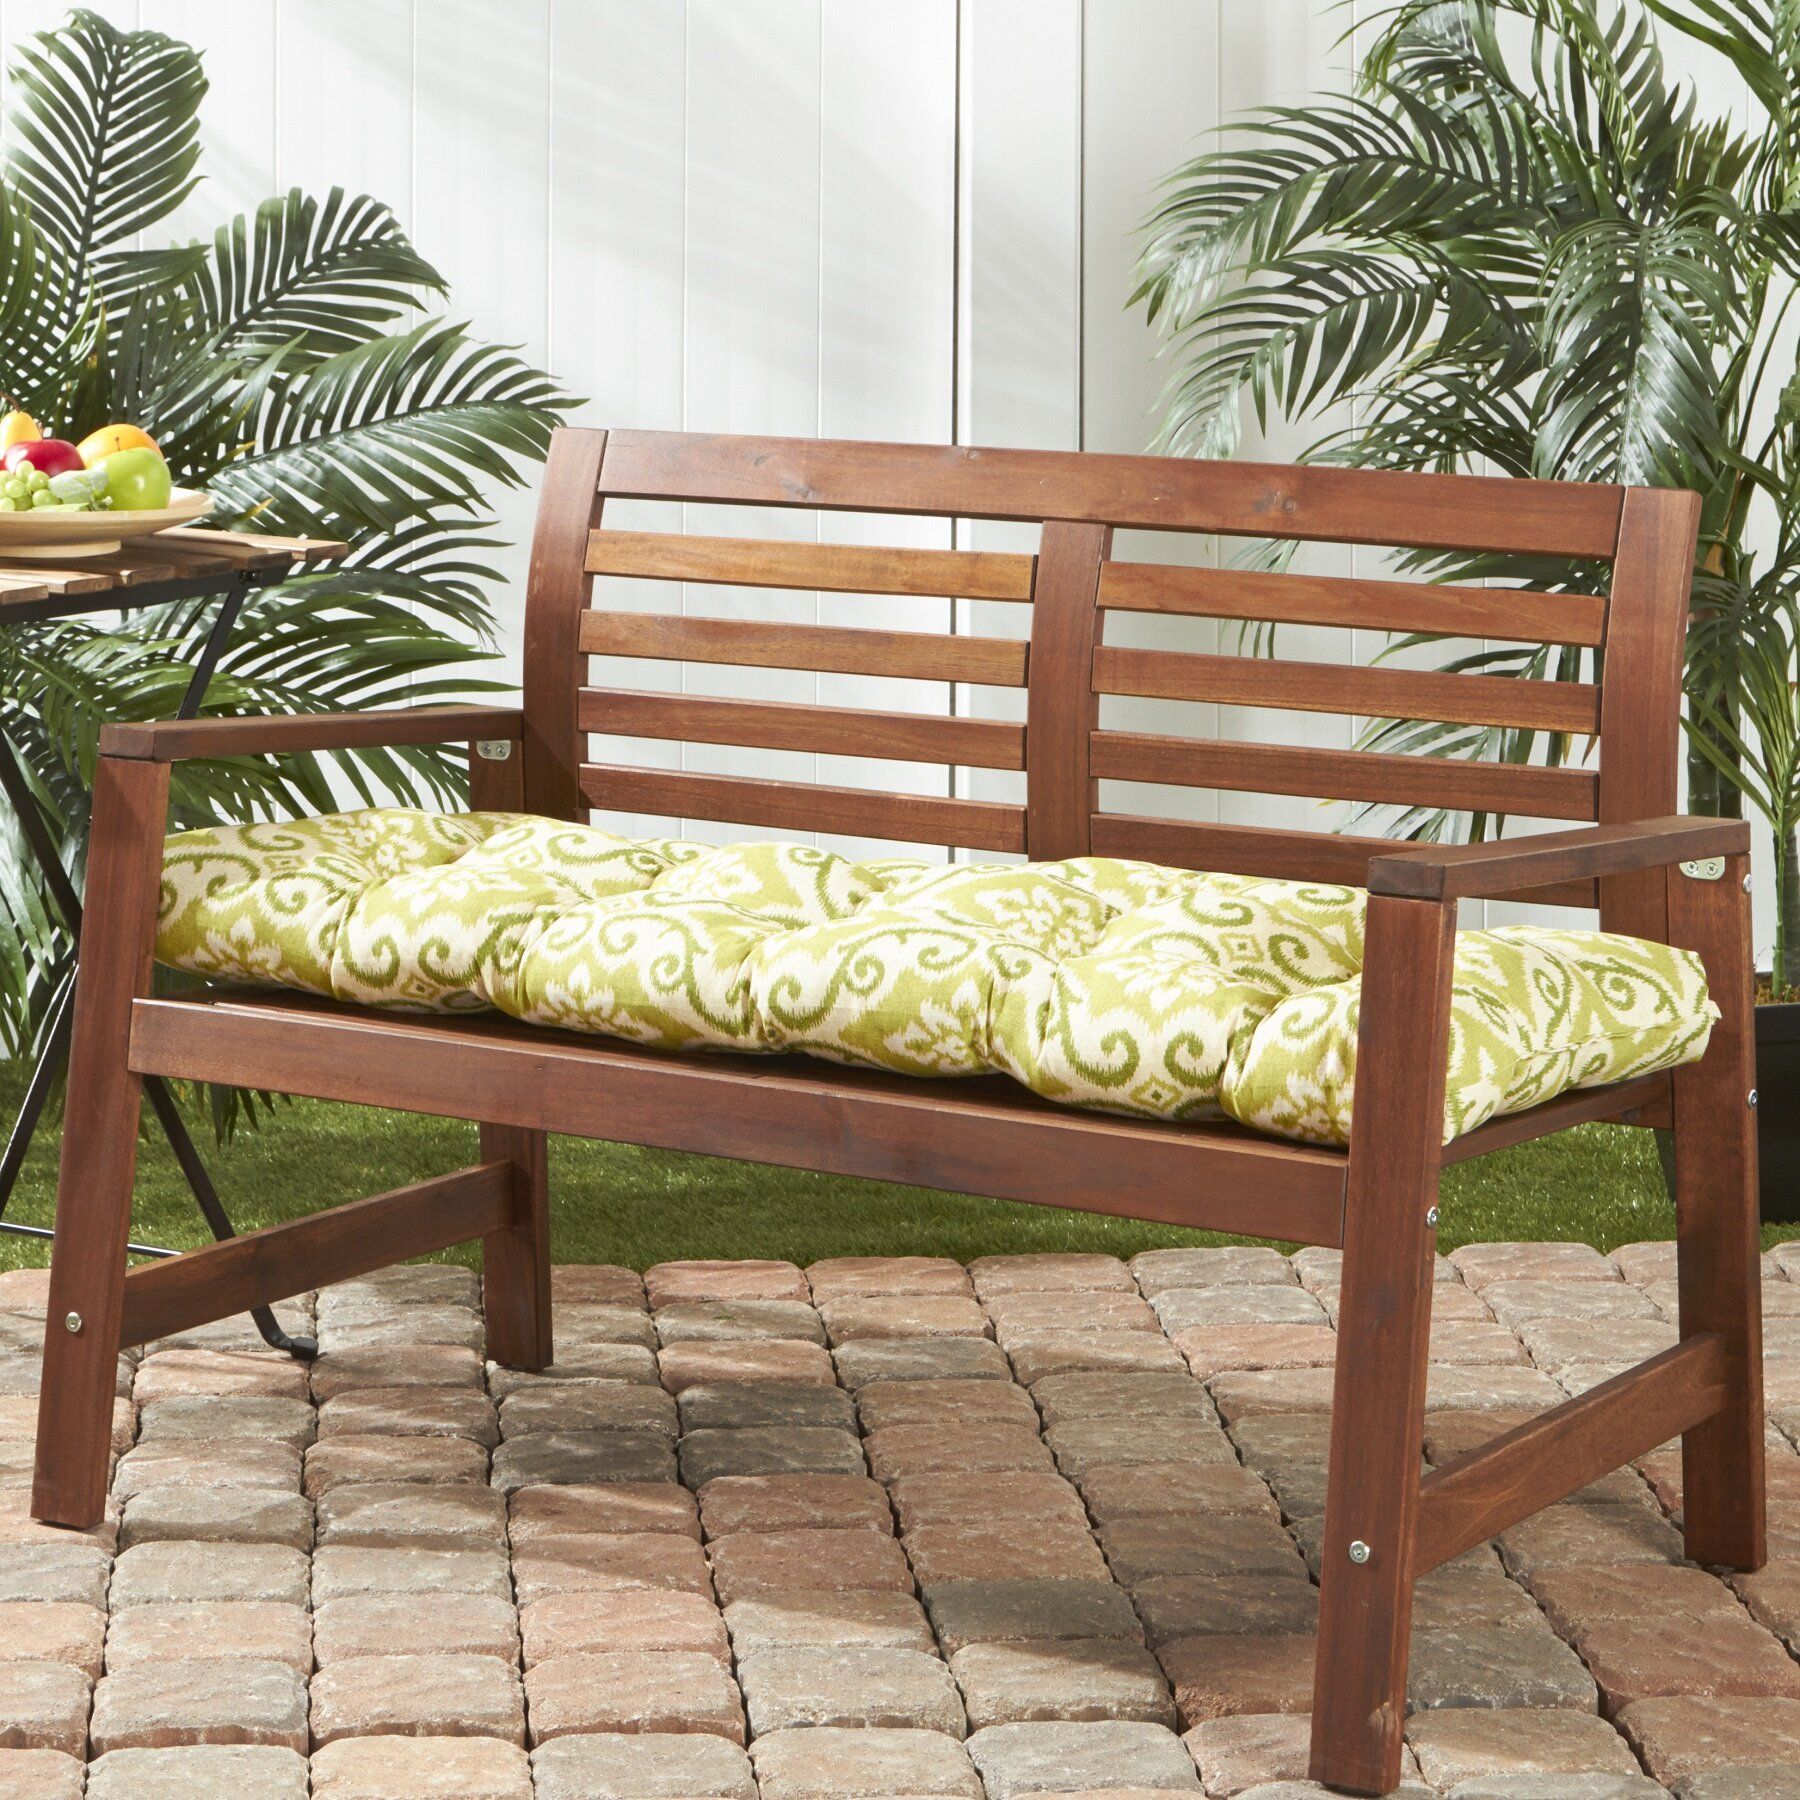 Greendale Home Fashions Outdoor Bench Cushion & Reviews